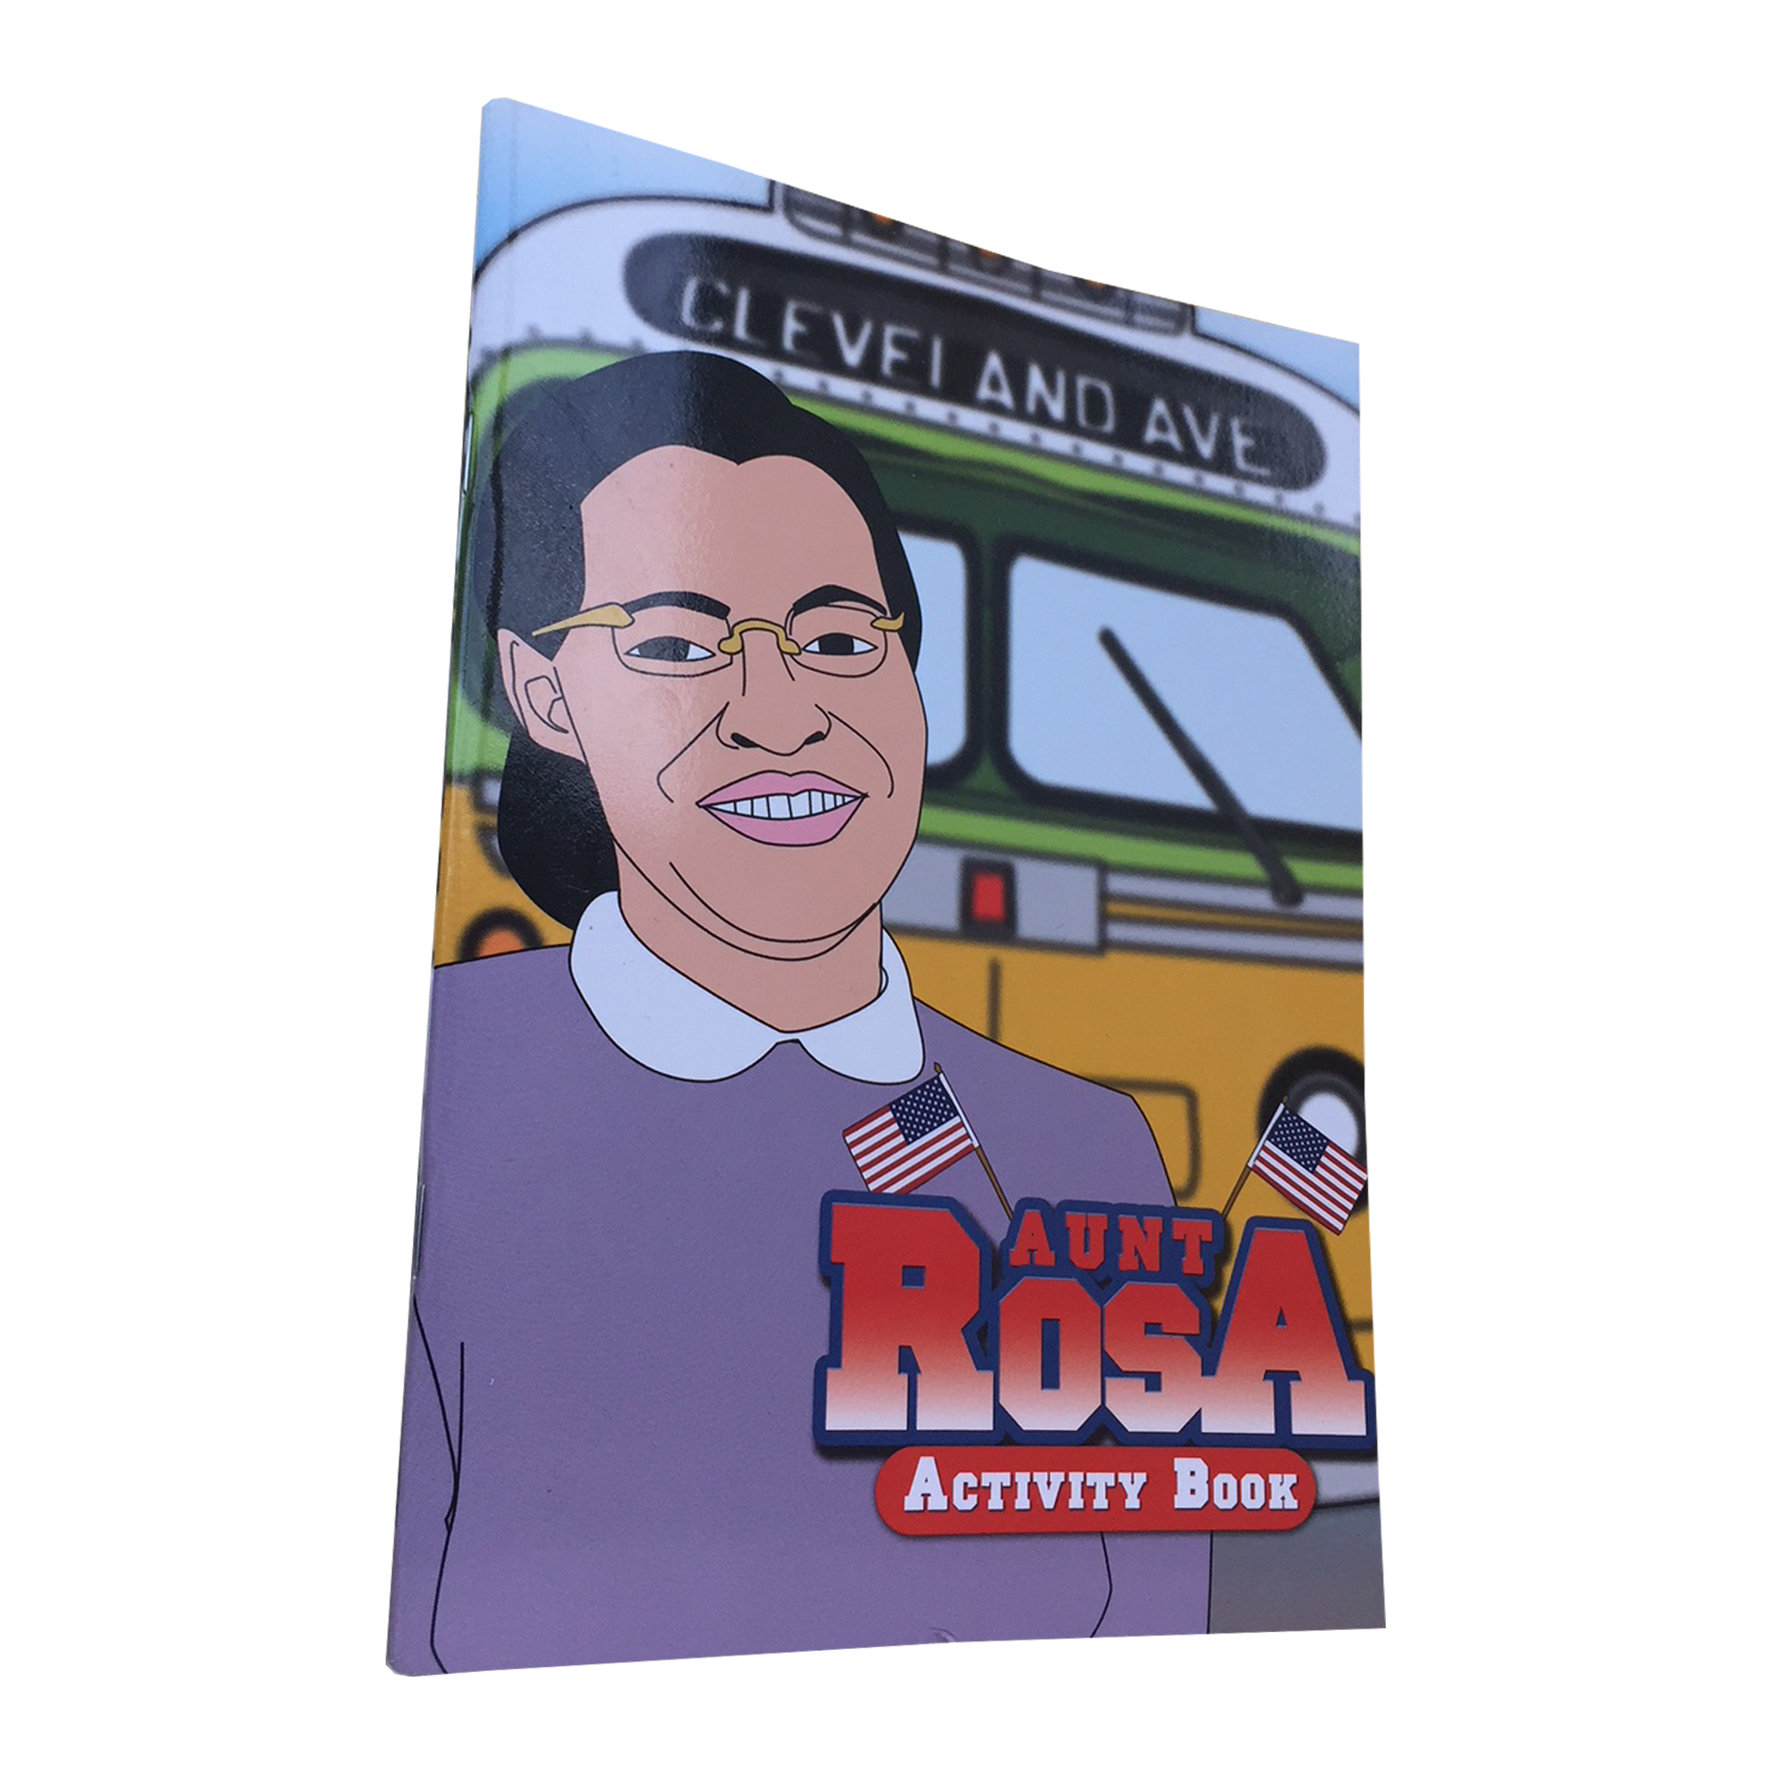 Aunty Rosa: Black History Activity Book 00002